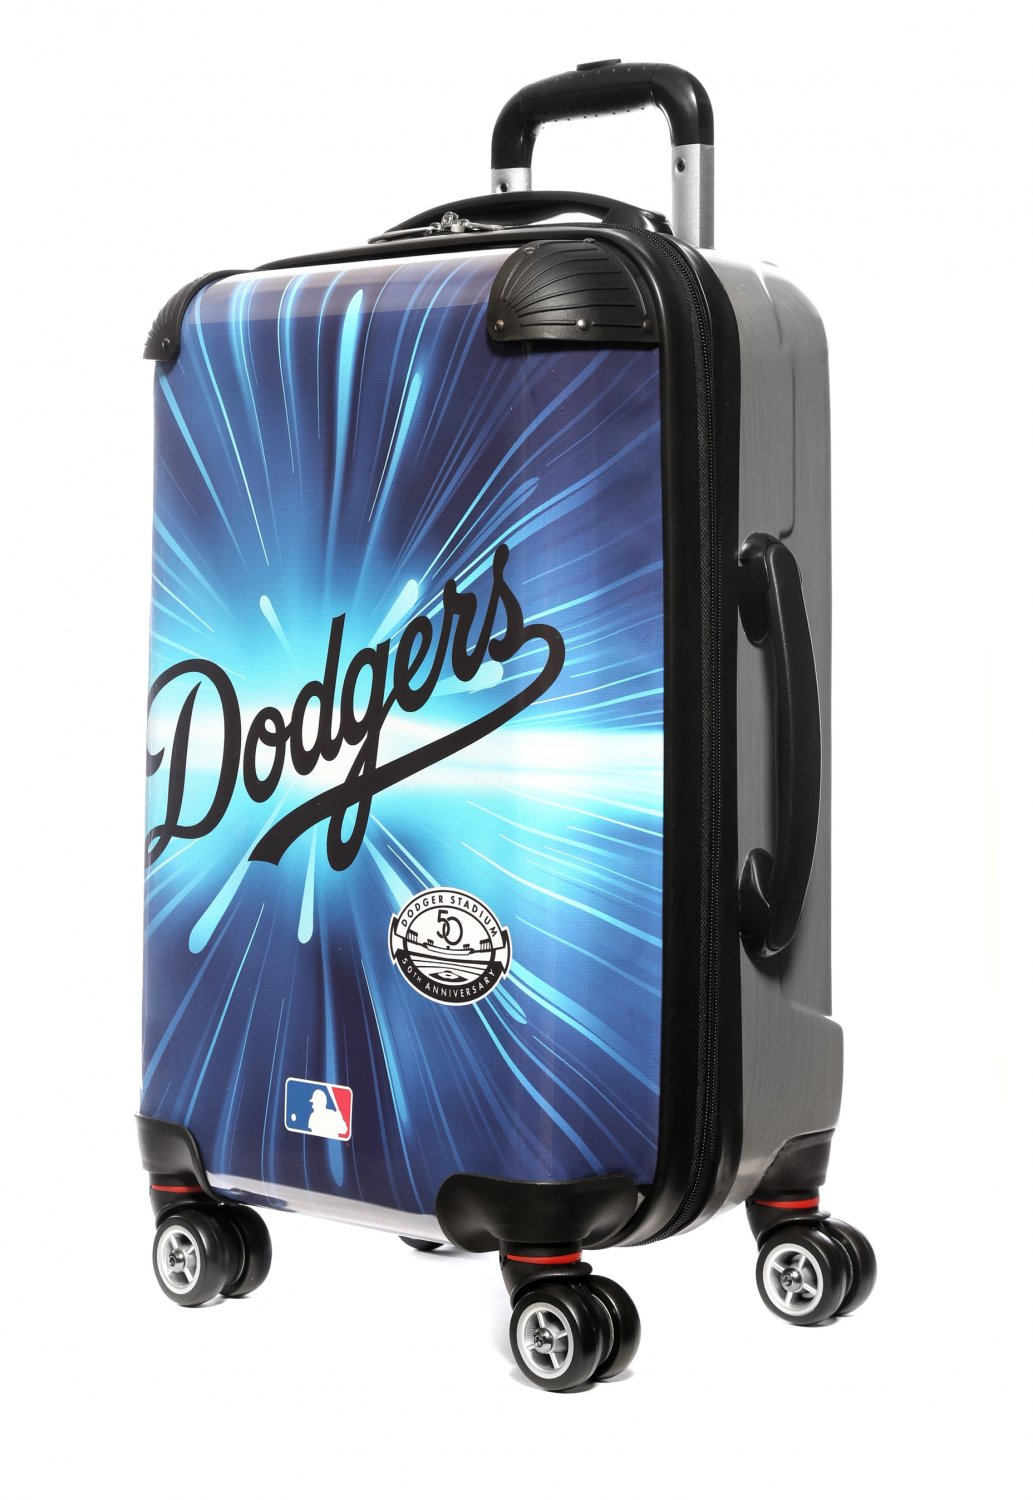 "Los Angeles Dodgers, 21"" Clear Poly Carry-On Luggage by Kaybull #LAD5"